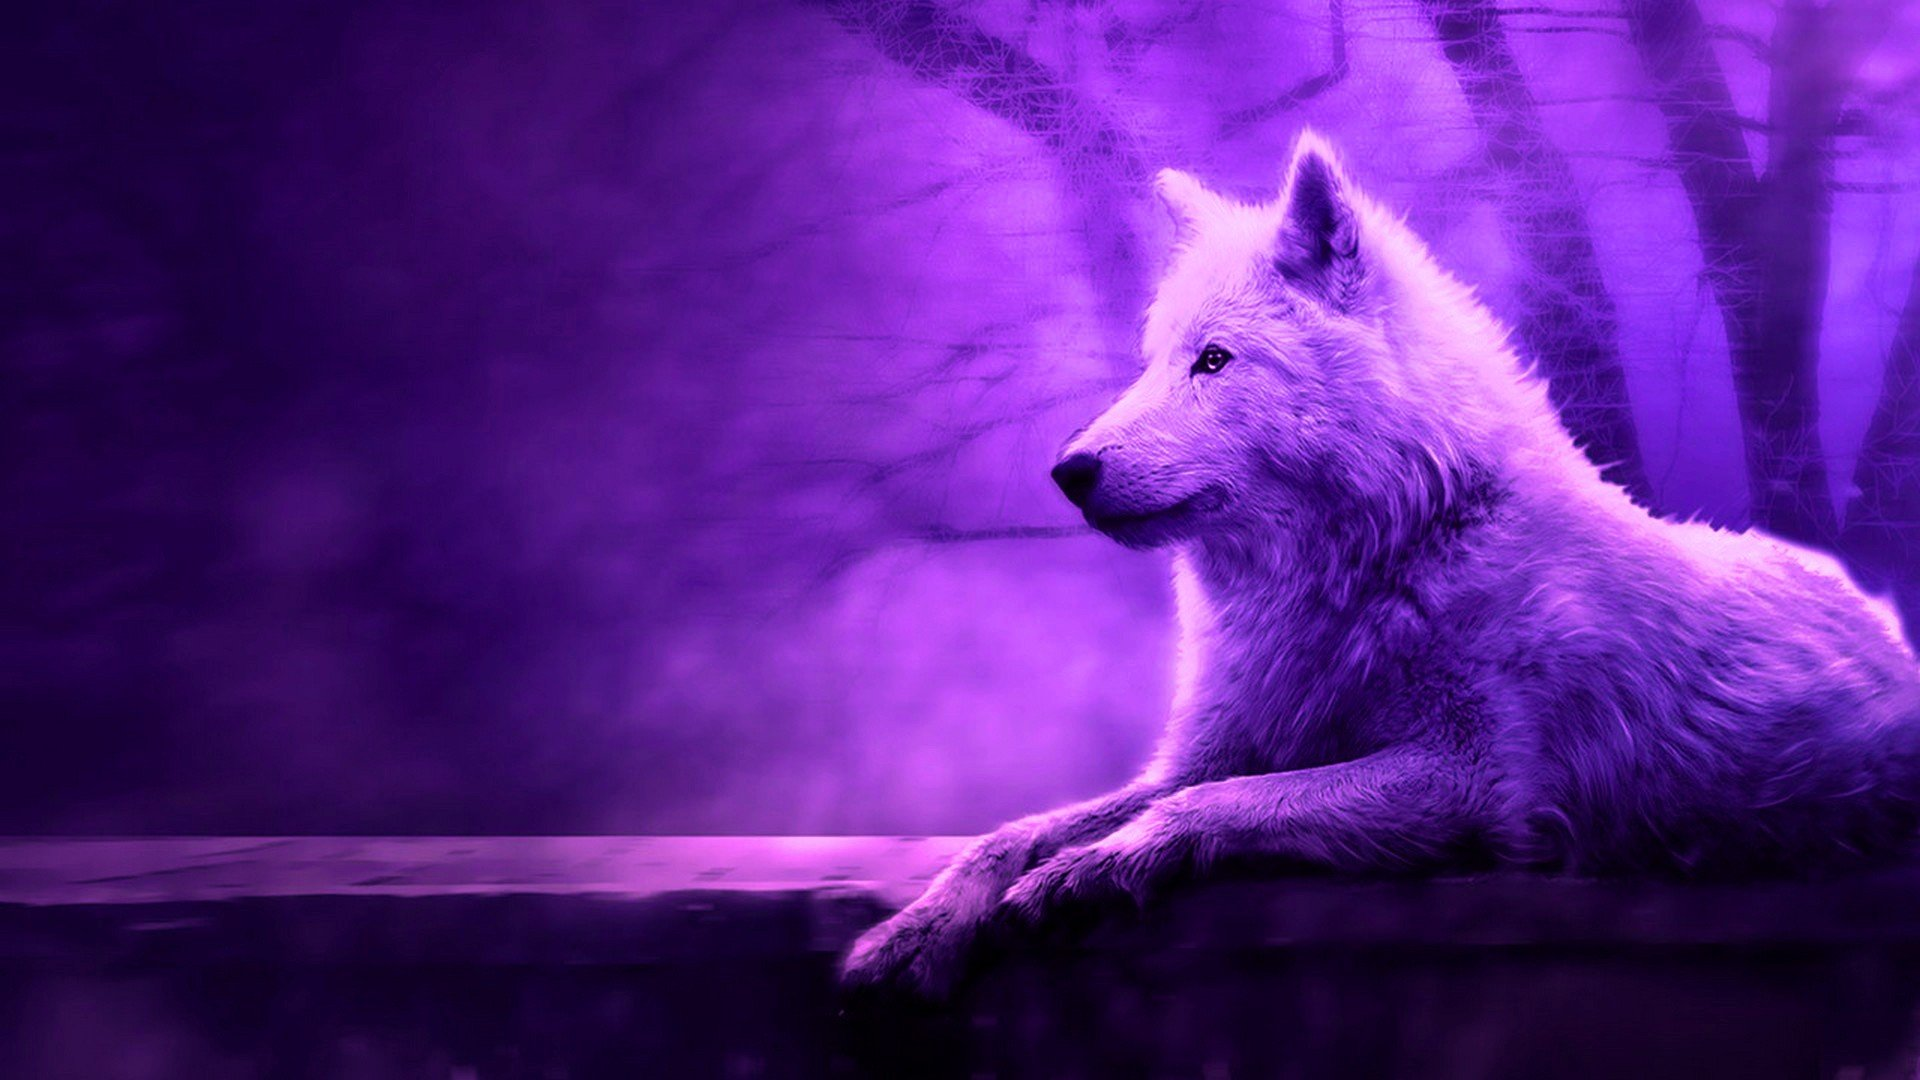 Cool Wolf HD Backgrounds 2021 Live Wallpaper HD 1920x1080